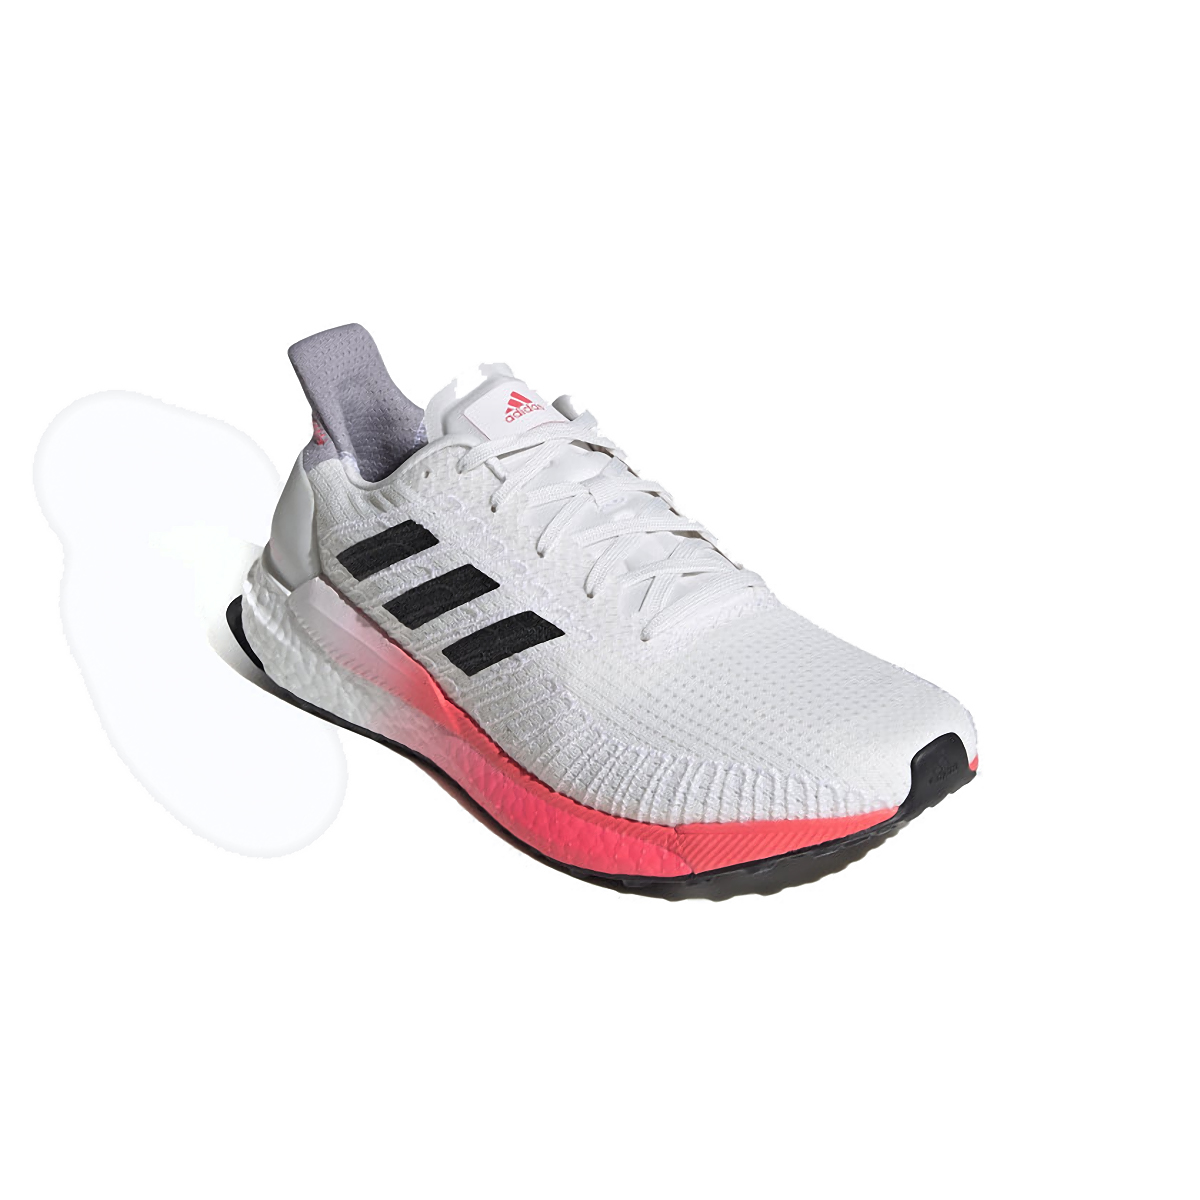 Men's Adidas SolarBOOST 19 Running Shoe - Color: Crystal White/Core Black/Copper Metallic - Size: 6.5 - Width: Regular, Crystal White/Core Black/Copper Metallic, large, image 4